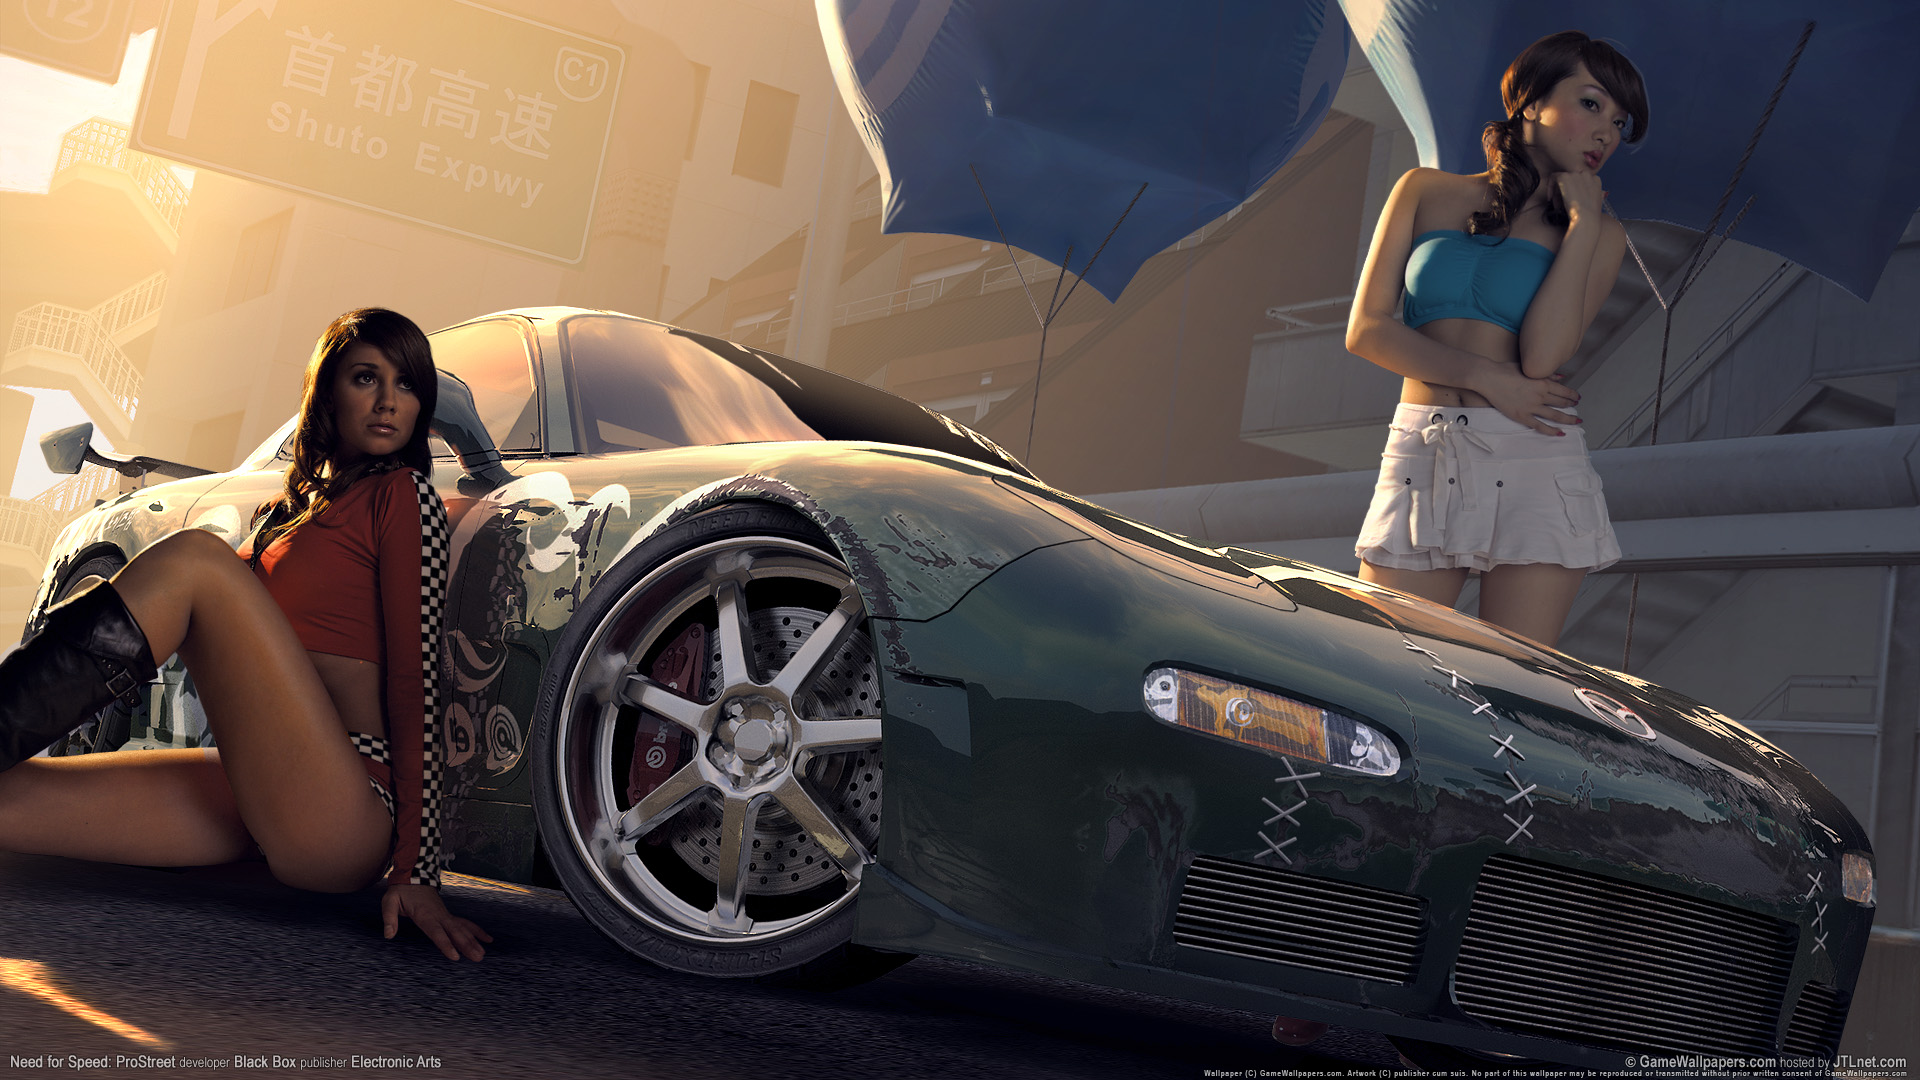 HD Wallpapers Need for speed prostreet Girls 5